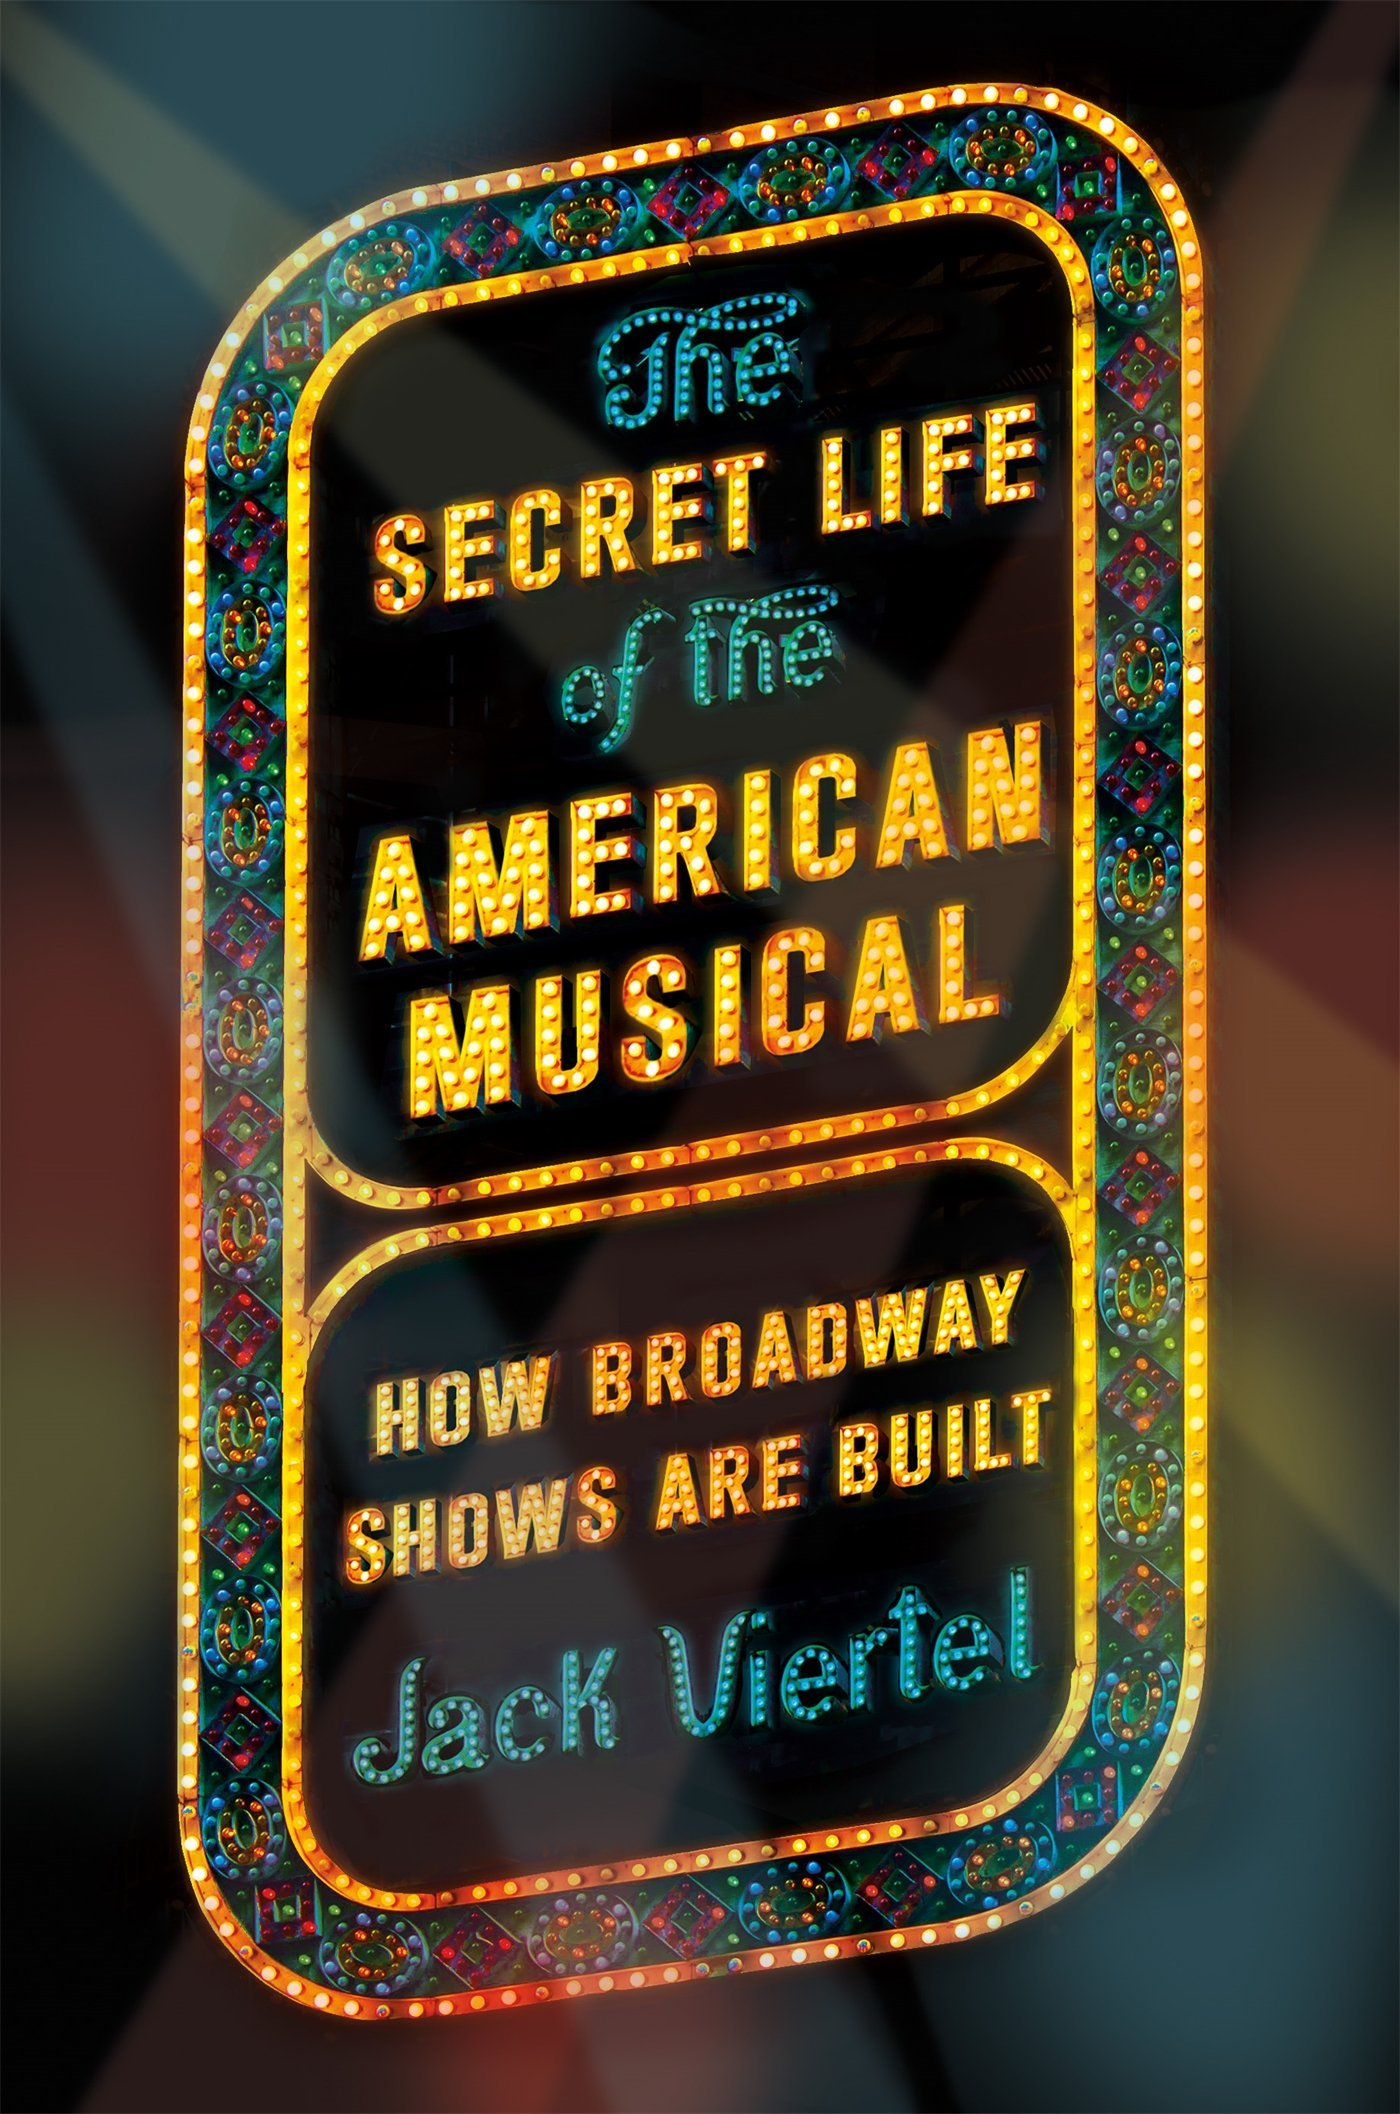 The secret life of the american musical how broadway shows are the secret life of the american musical how broadway shows are built jack viertel 9780374536893 amazon books fandeluxe Images